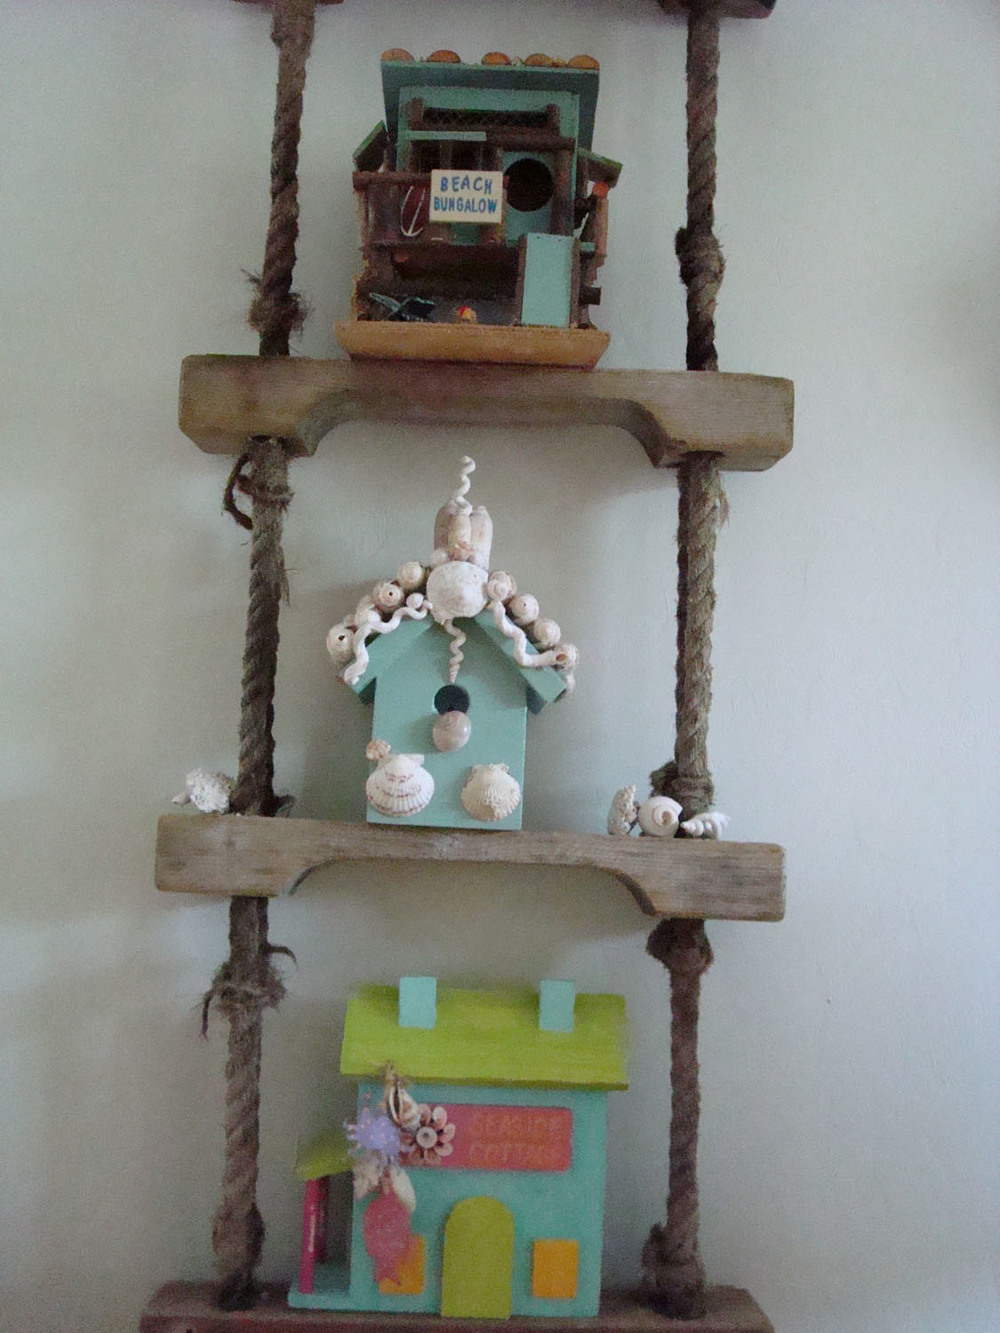 island-beach-house-renovation-whimsical-wall-decor-on-rope-and-wood-ladder-24.jpg